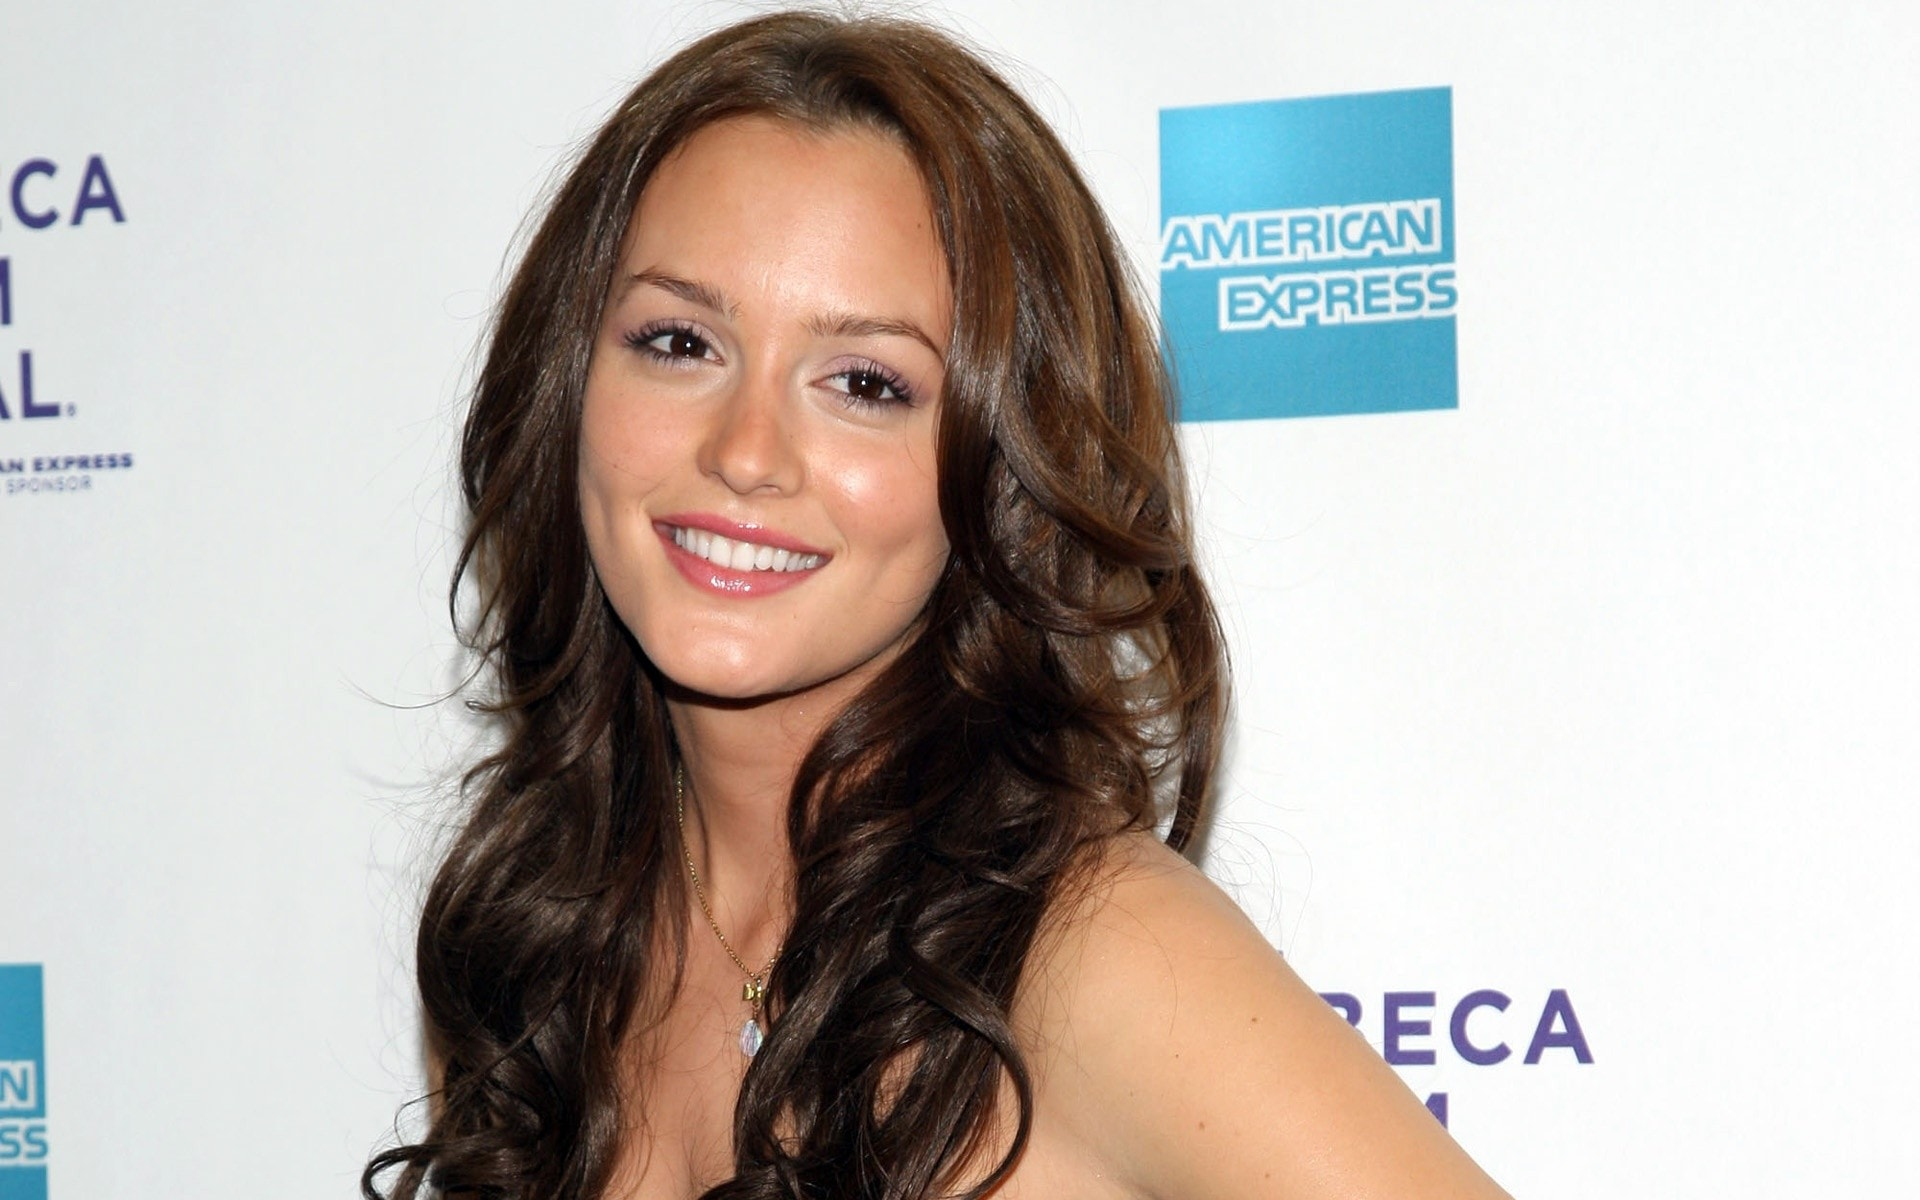 Leighton Meester Wallpapers hd